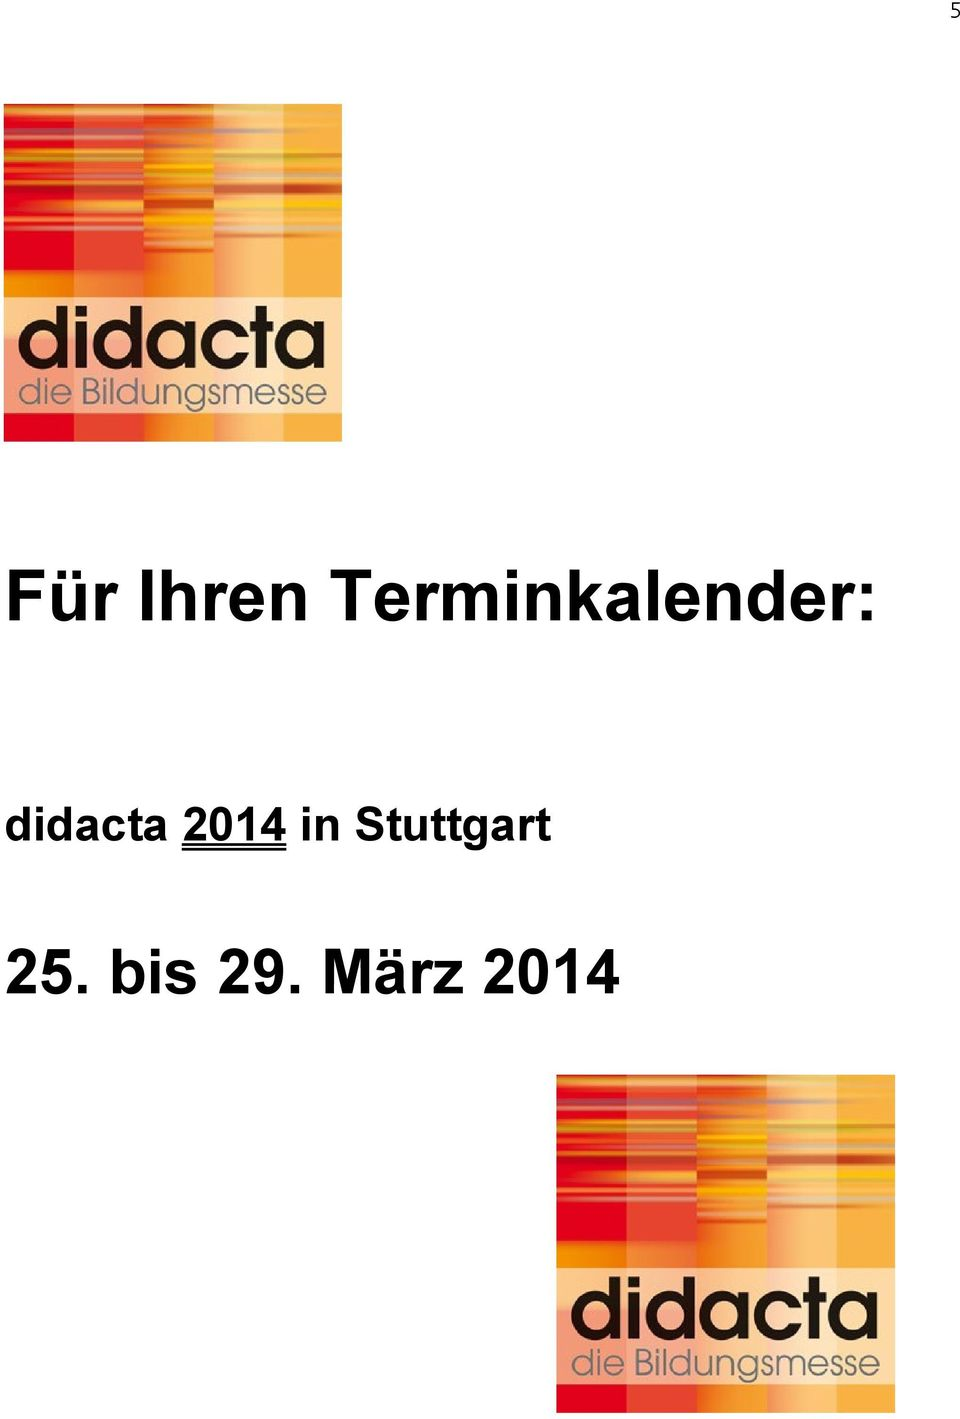 didacta 2014 in